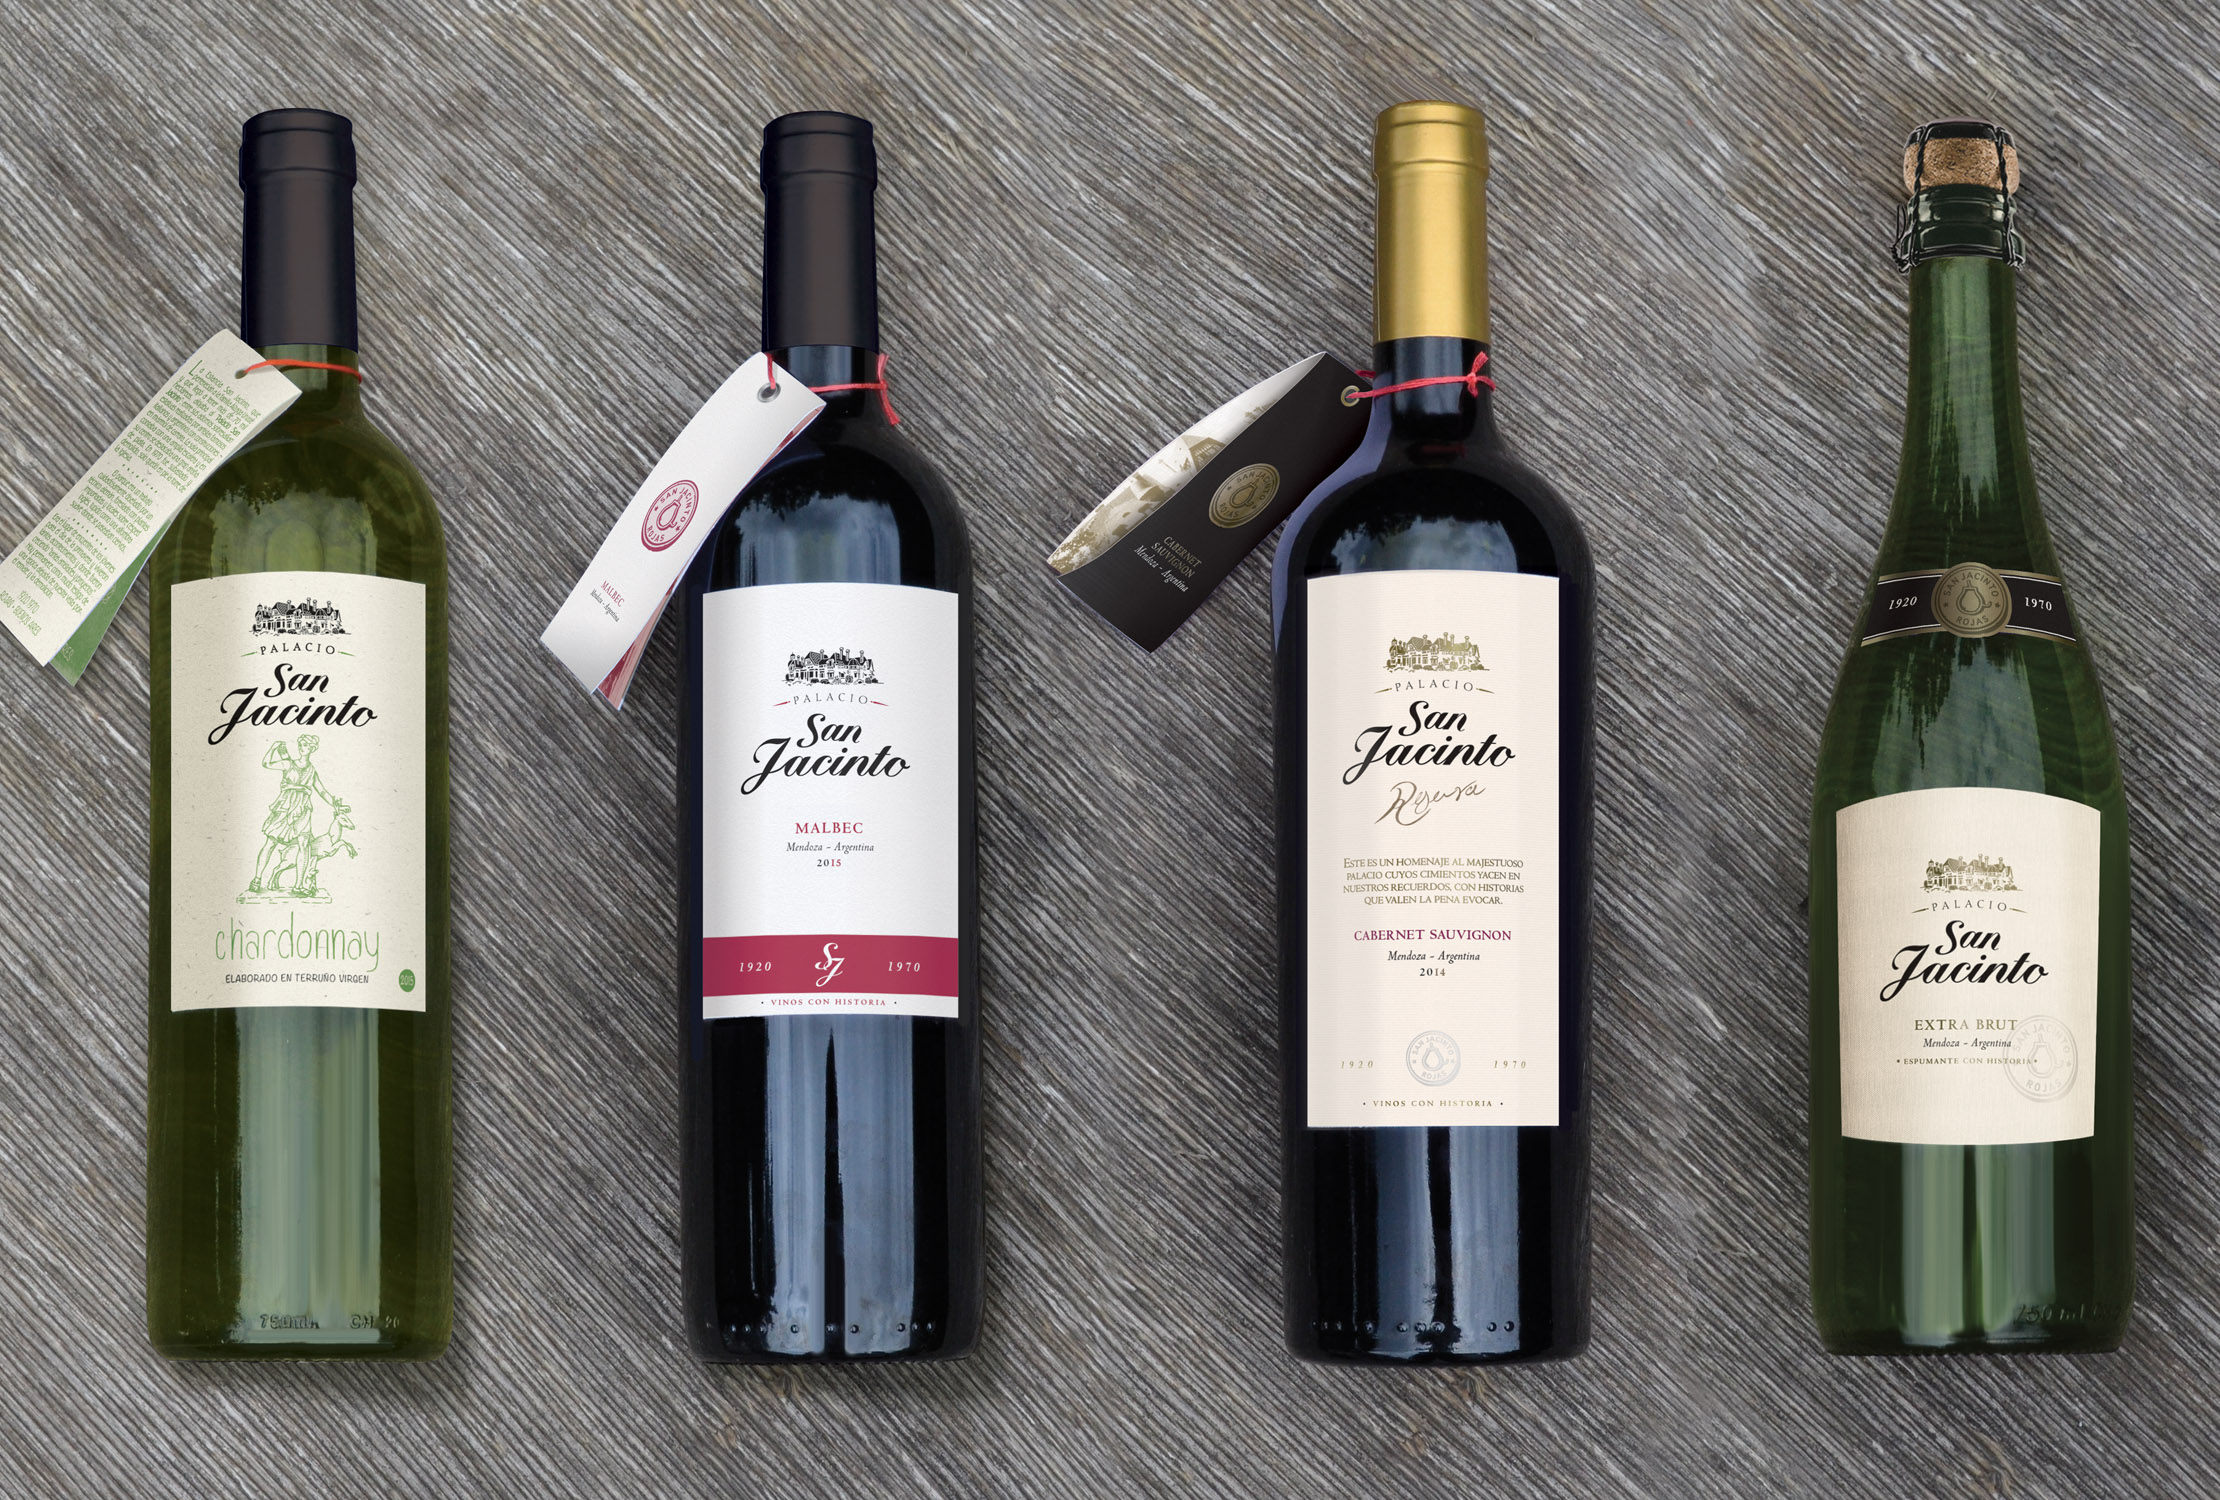 Argentinean Classic Line of Wines Characterised by Simple White Label Design